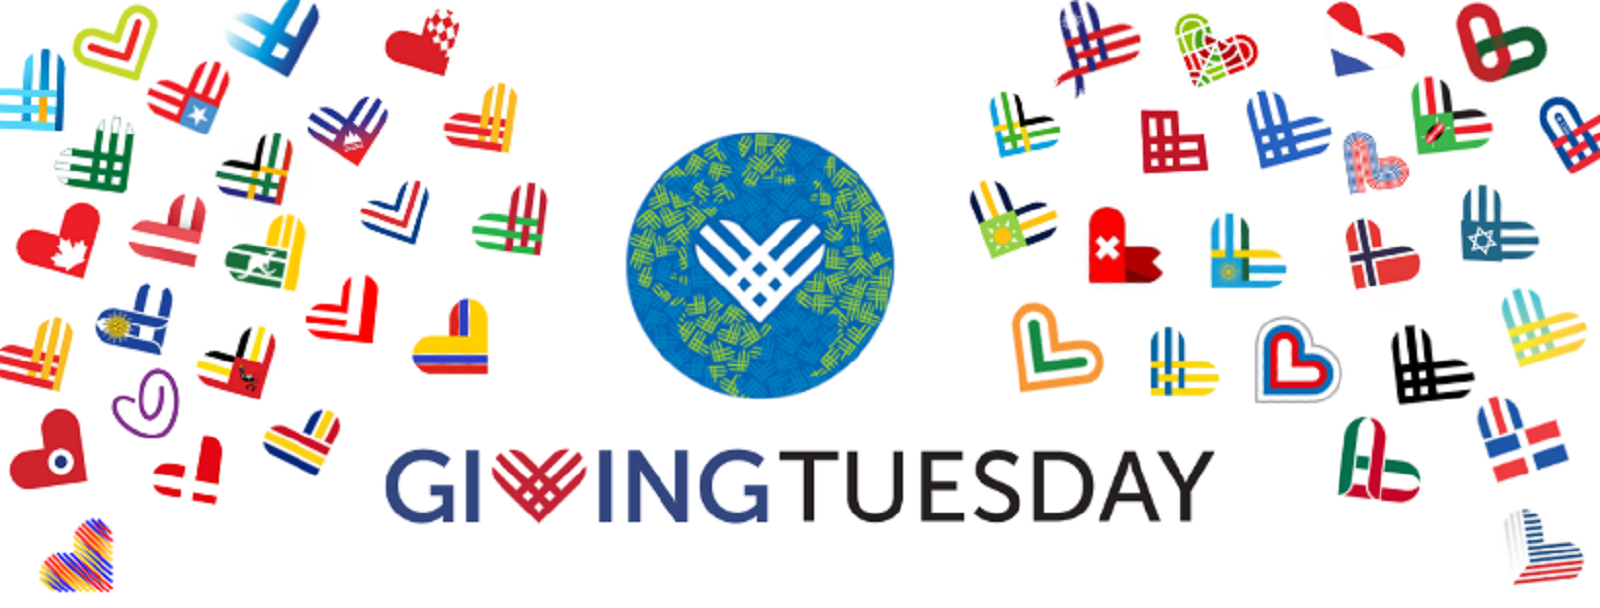 Giving Tuesday 2020 Support Project Steno image